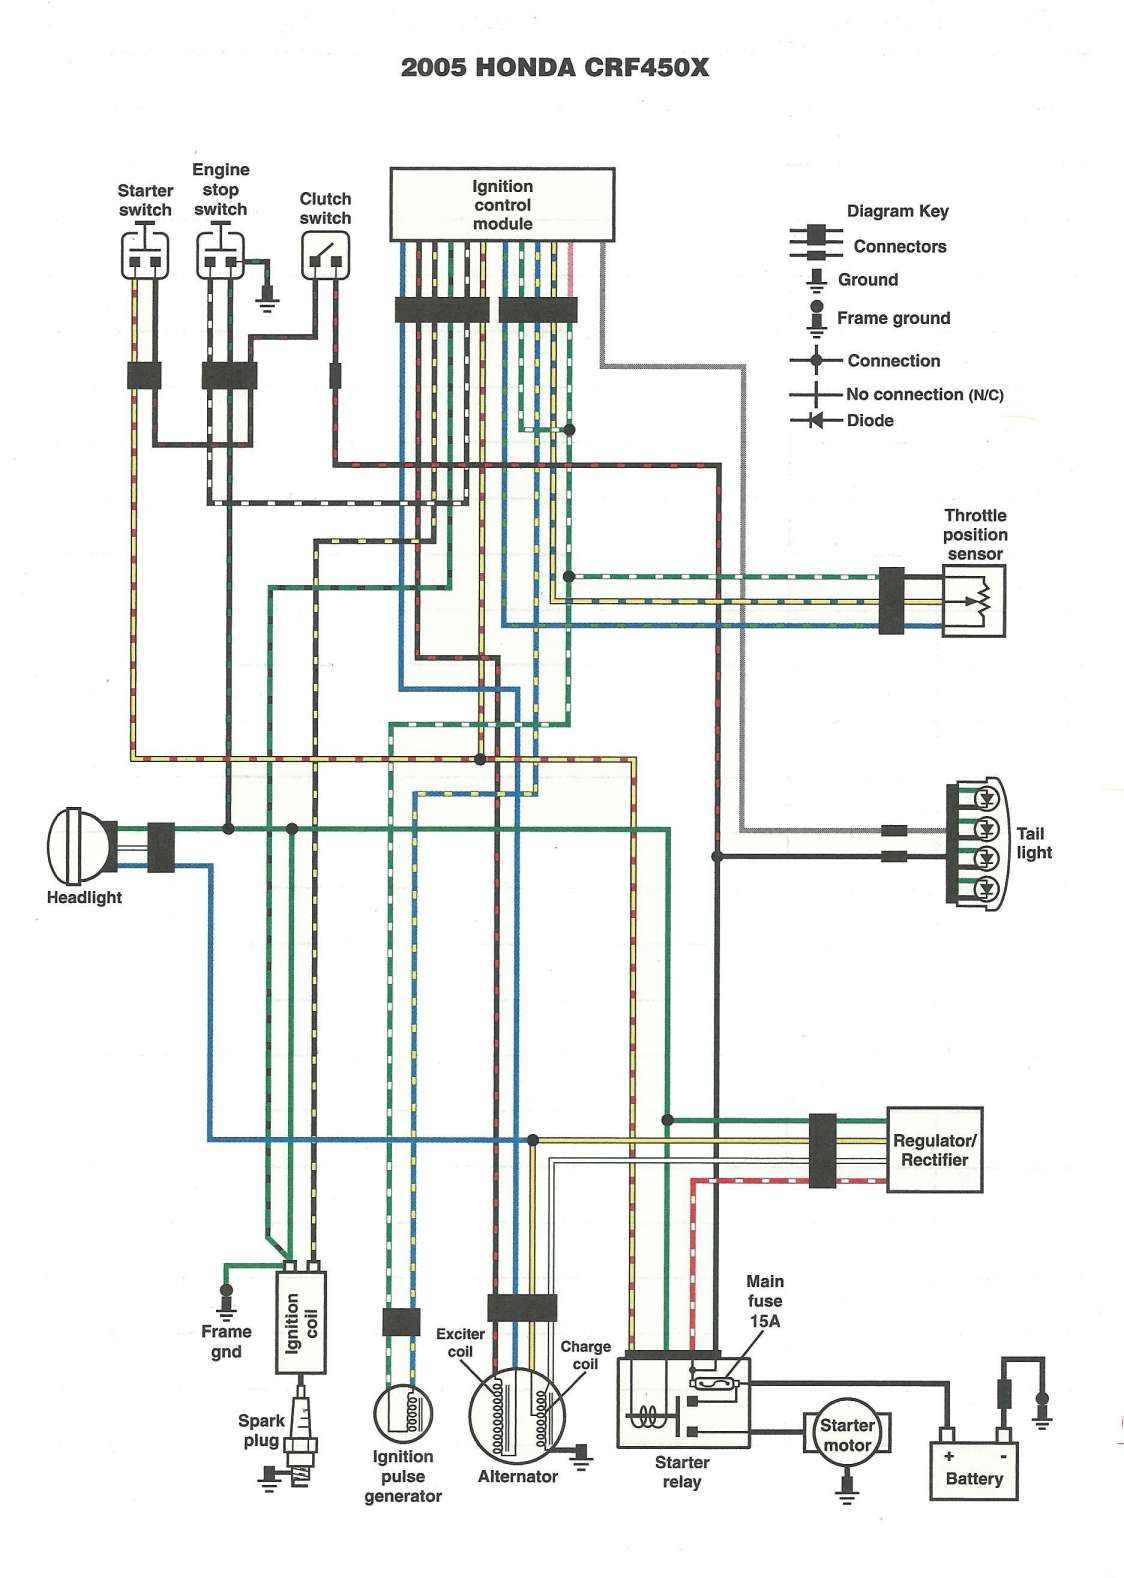 1999 Yamaha Motorcycle 1300 Wiring Diagrams | schematic ...